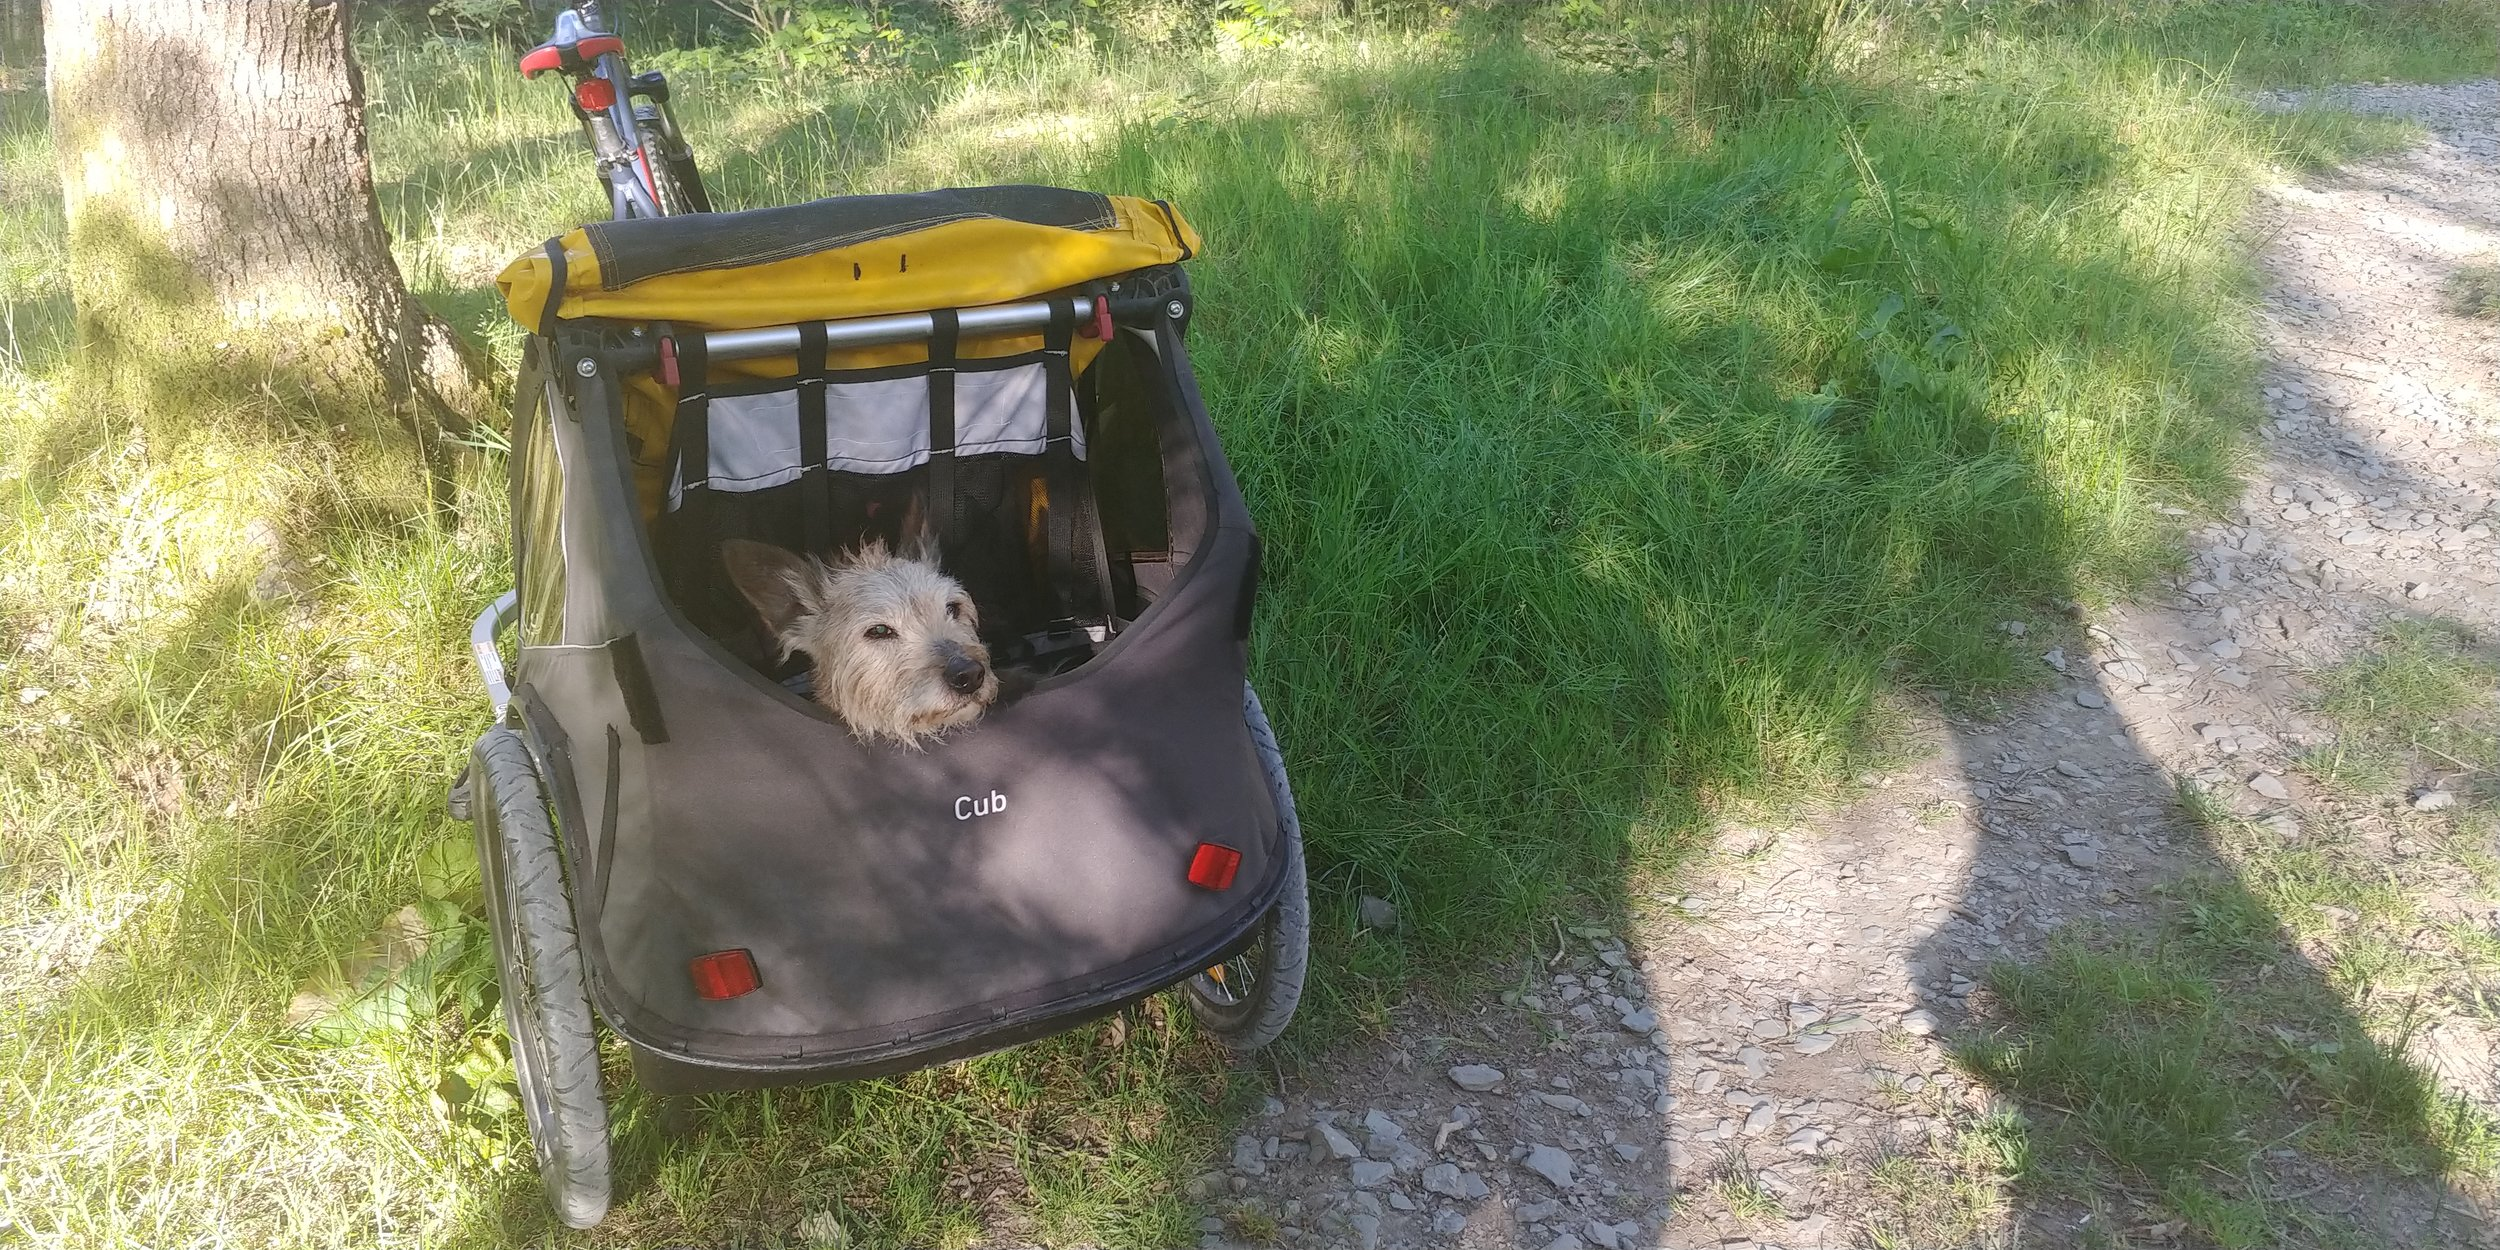 Those ears. That beard.